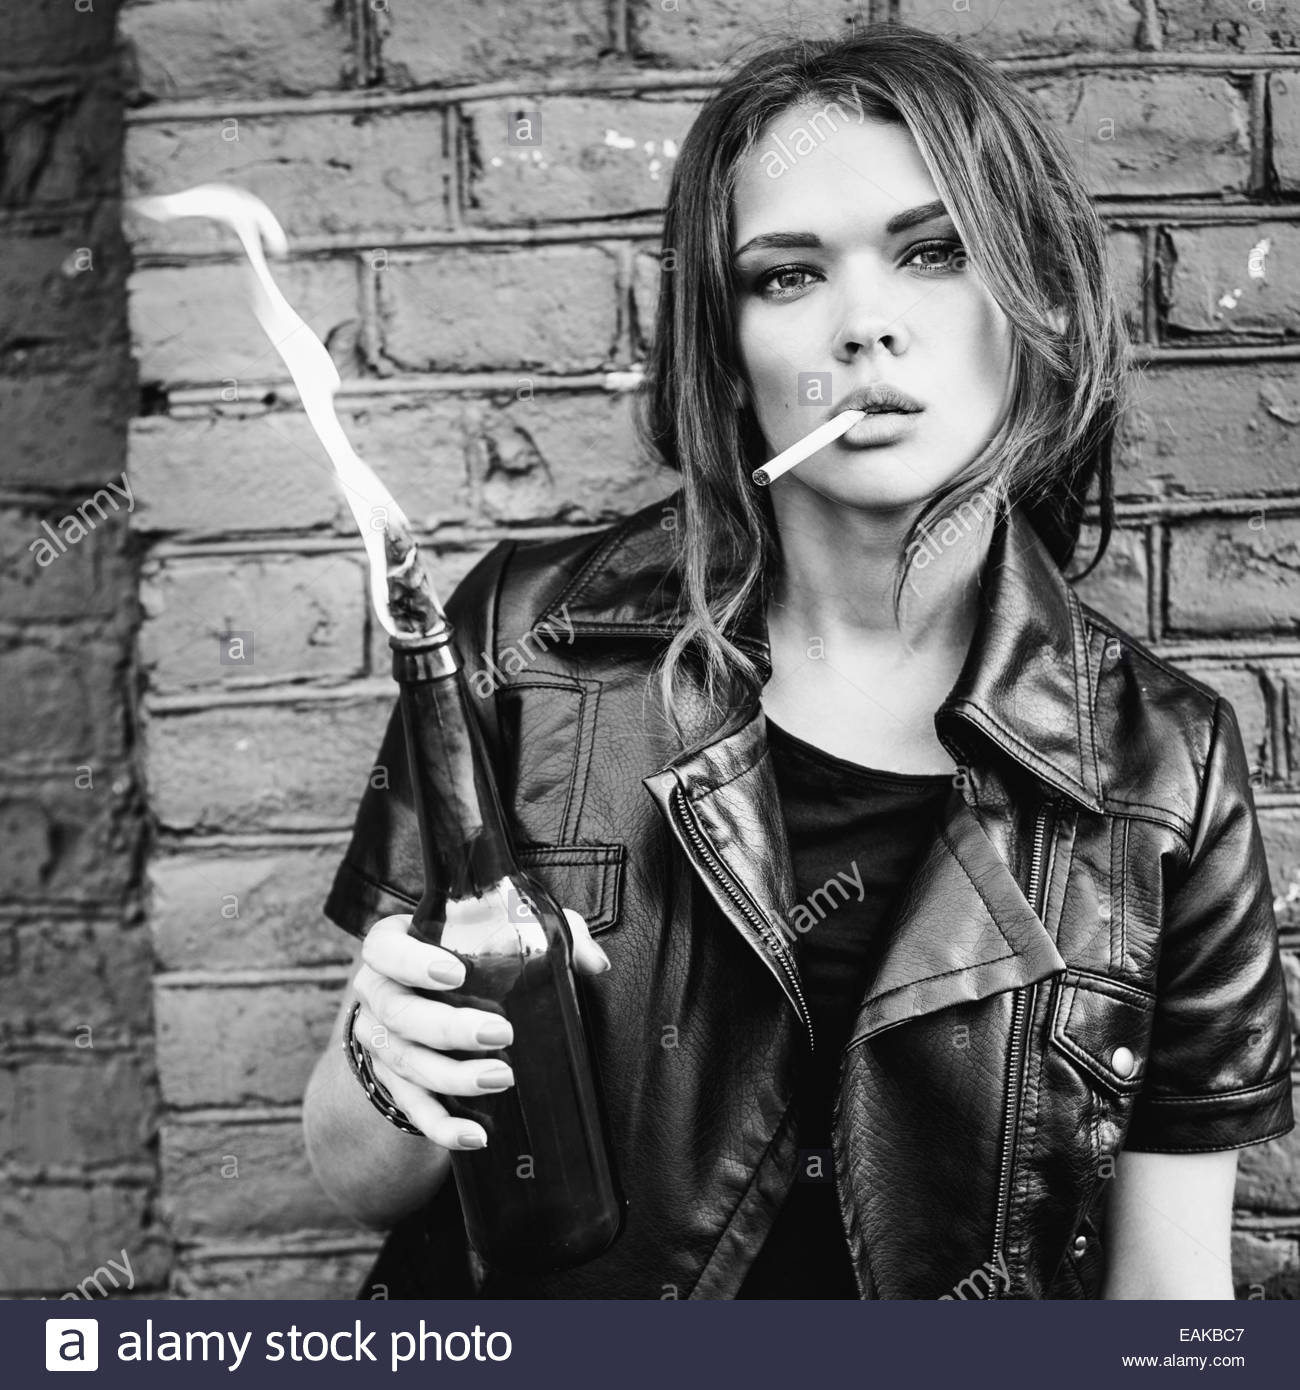 Black and white portrait of a beautiful girl smoking with a molotov